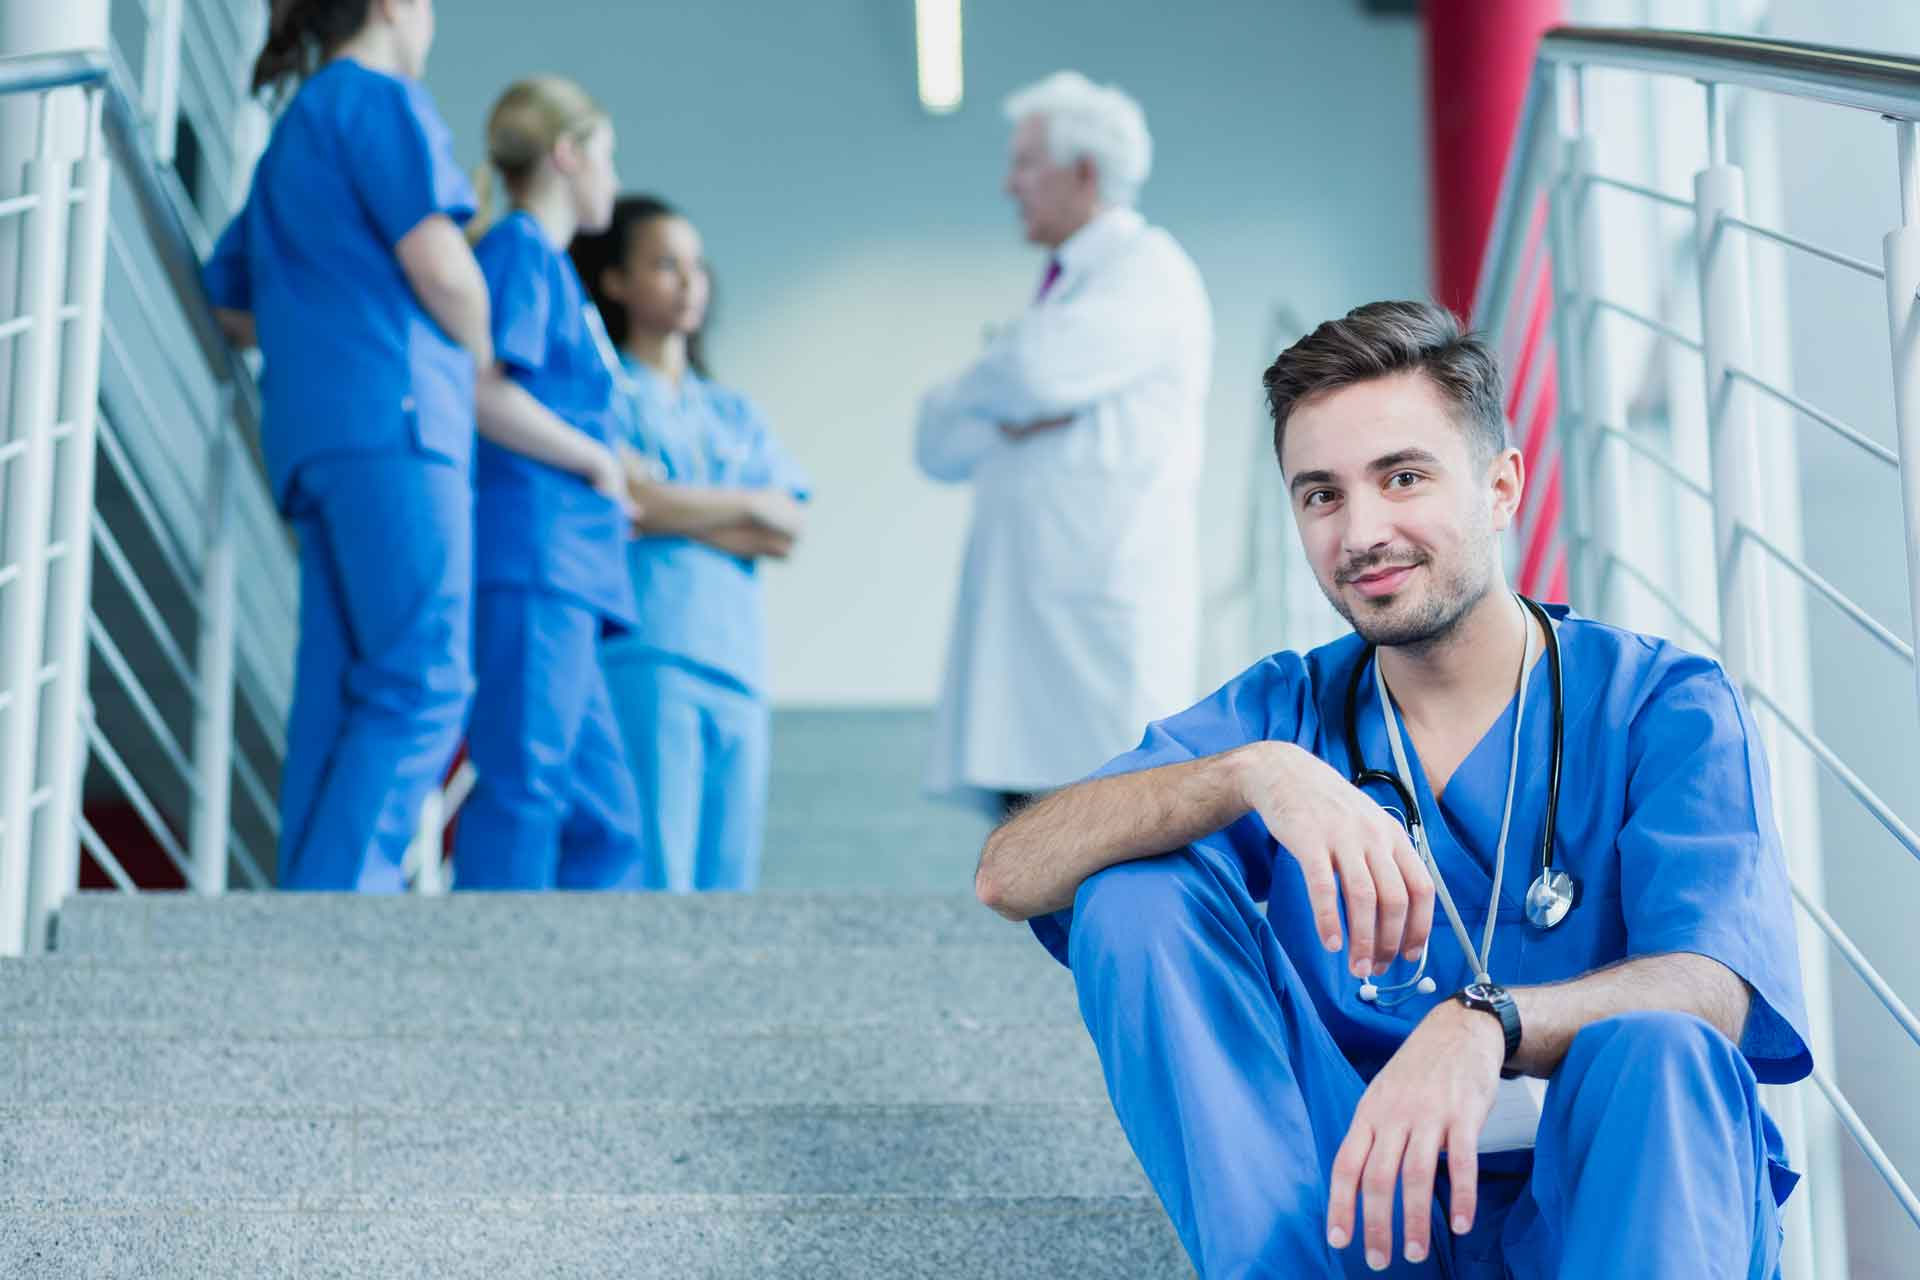 Leadership Skills Prepare Med Students for the World